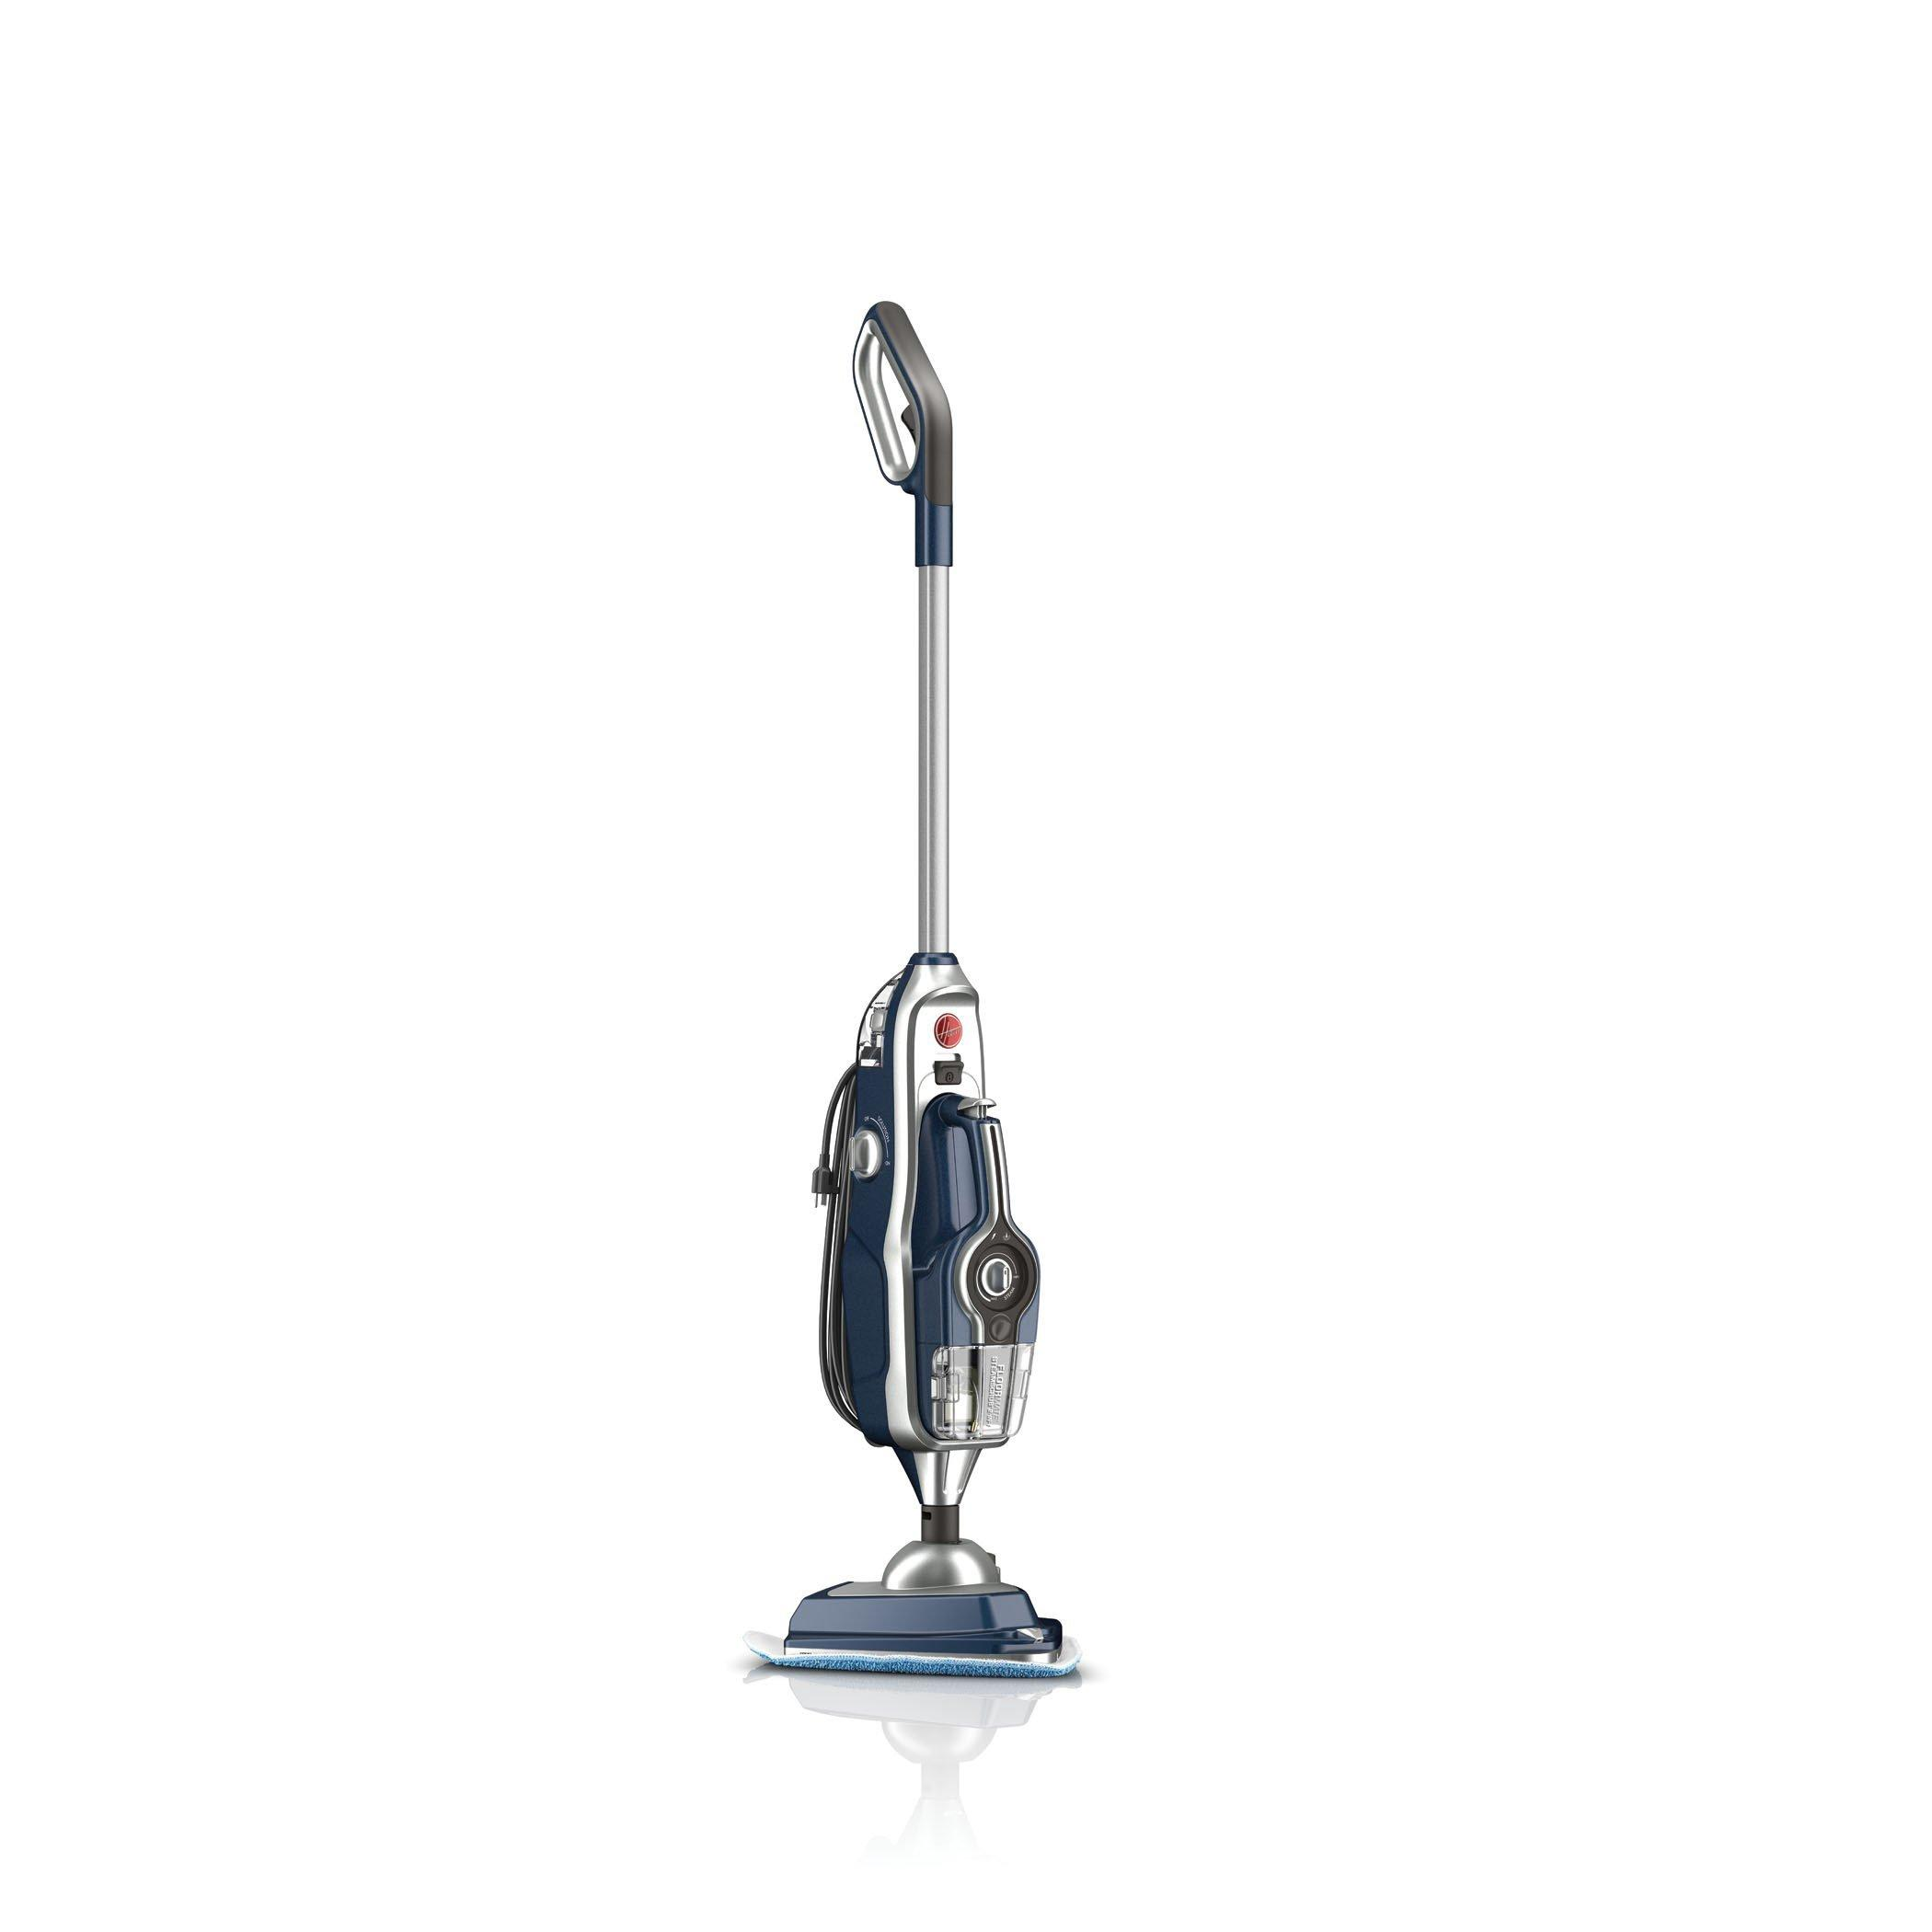 FloorMate SteamScrub Plus 2-in-1 Steam Mop2